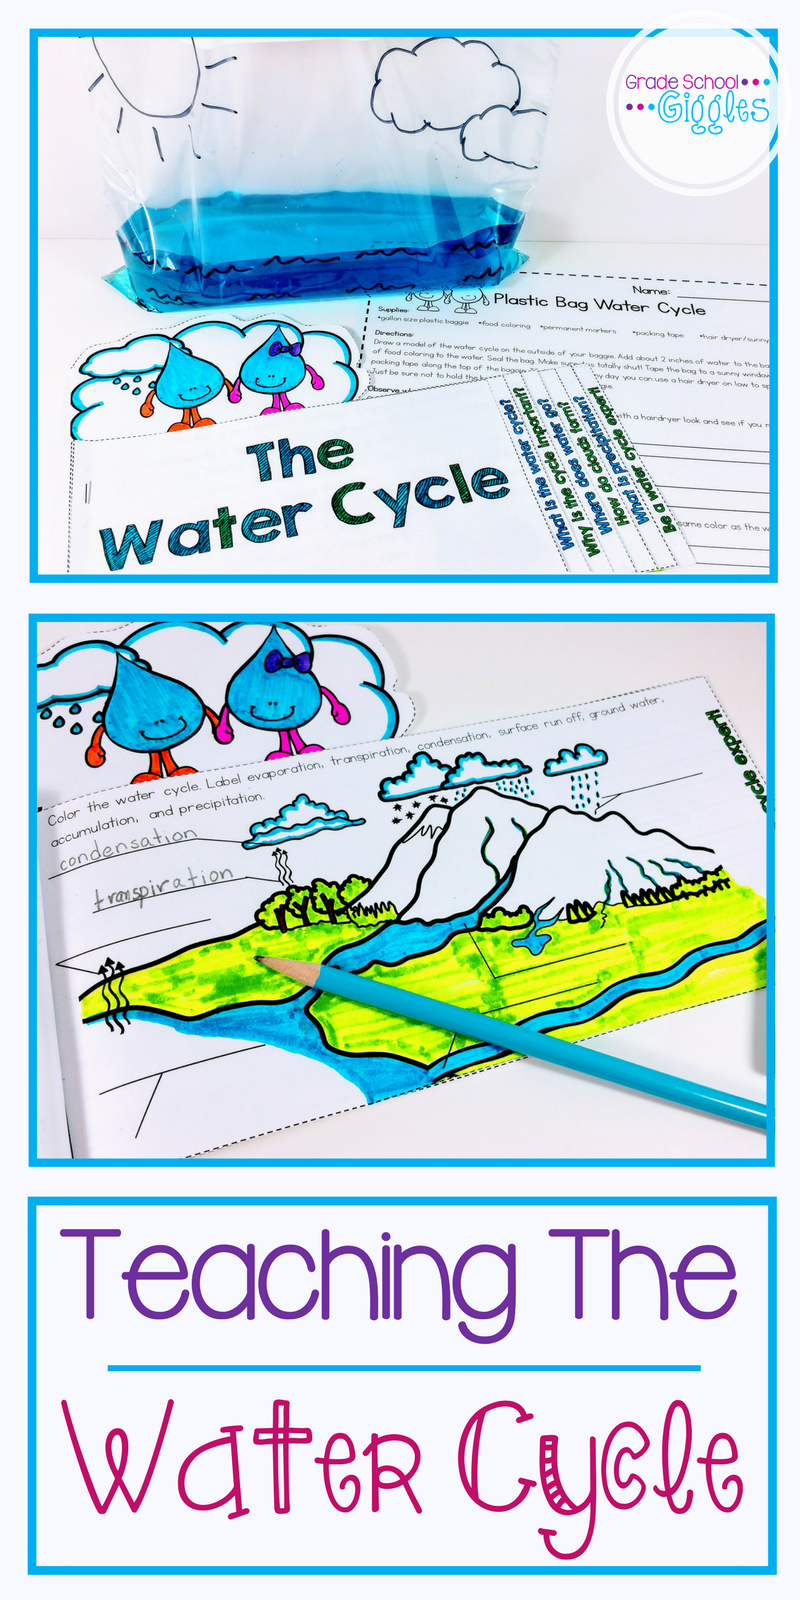 hight resolution of  planning the lesson and prepping activities can take up a lot of time if you want some awesome printables for teaching kids about the water cycle